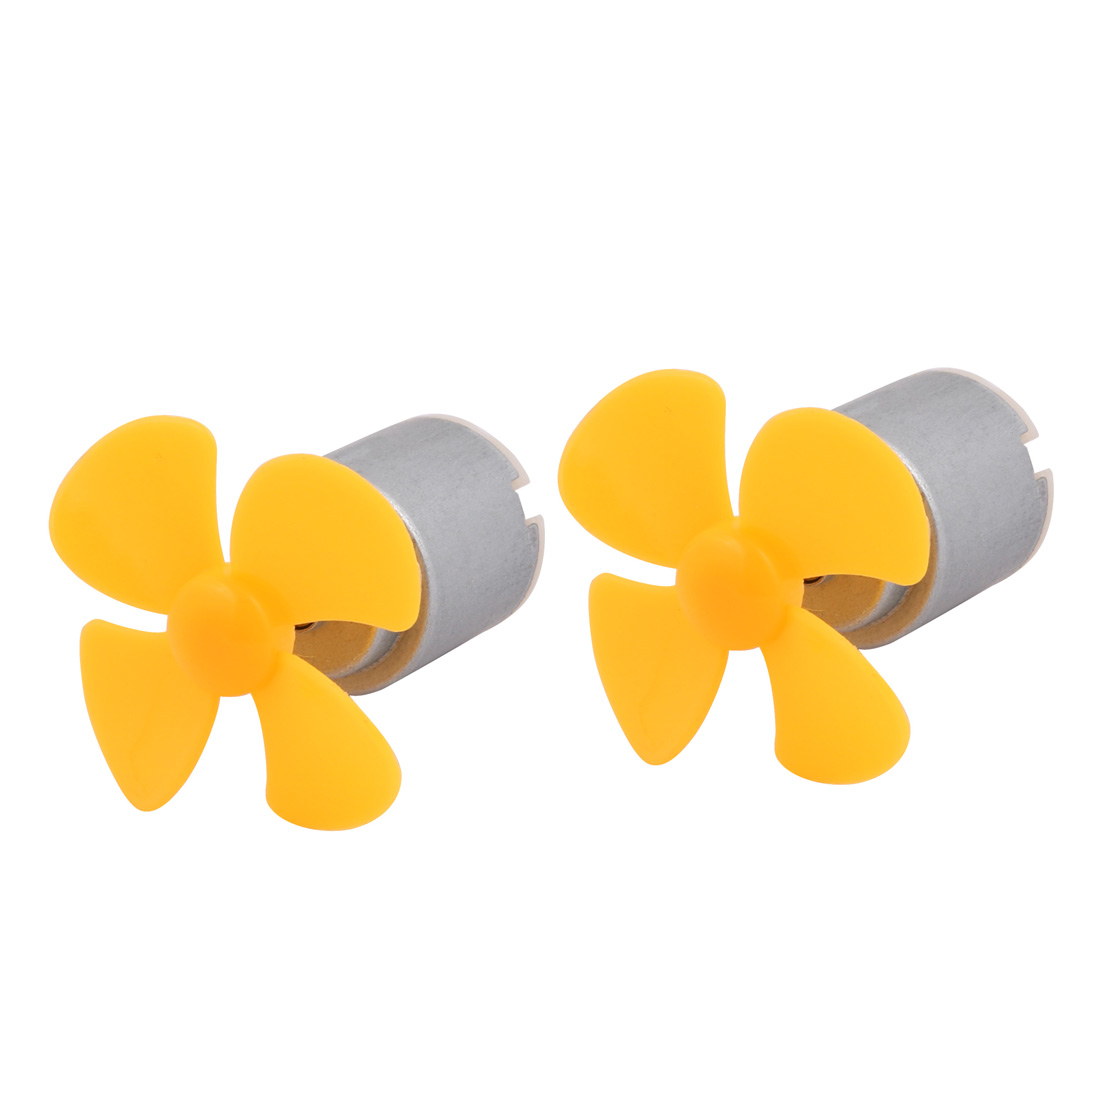 2Pcs DC 3V 17000RPM High Torque Motor 4 Vanes 40mm Dia Aircraft Propeller Yellow